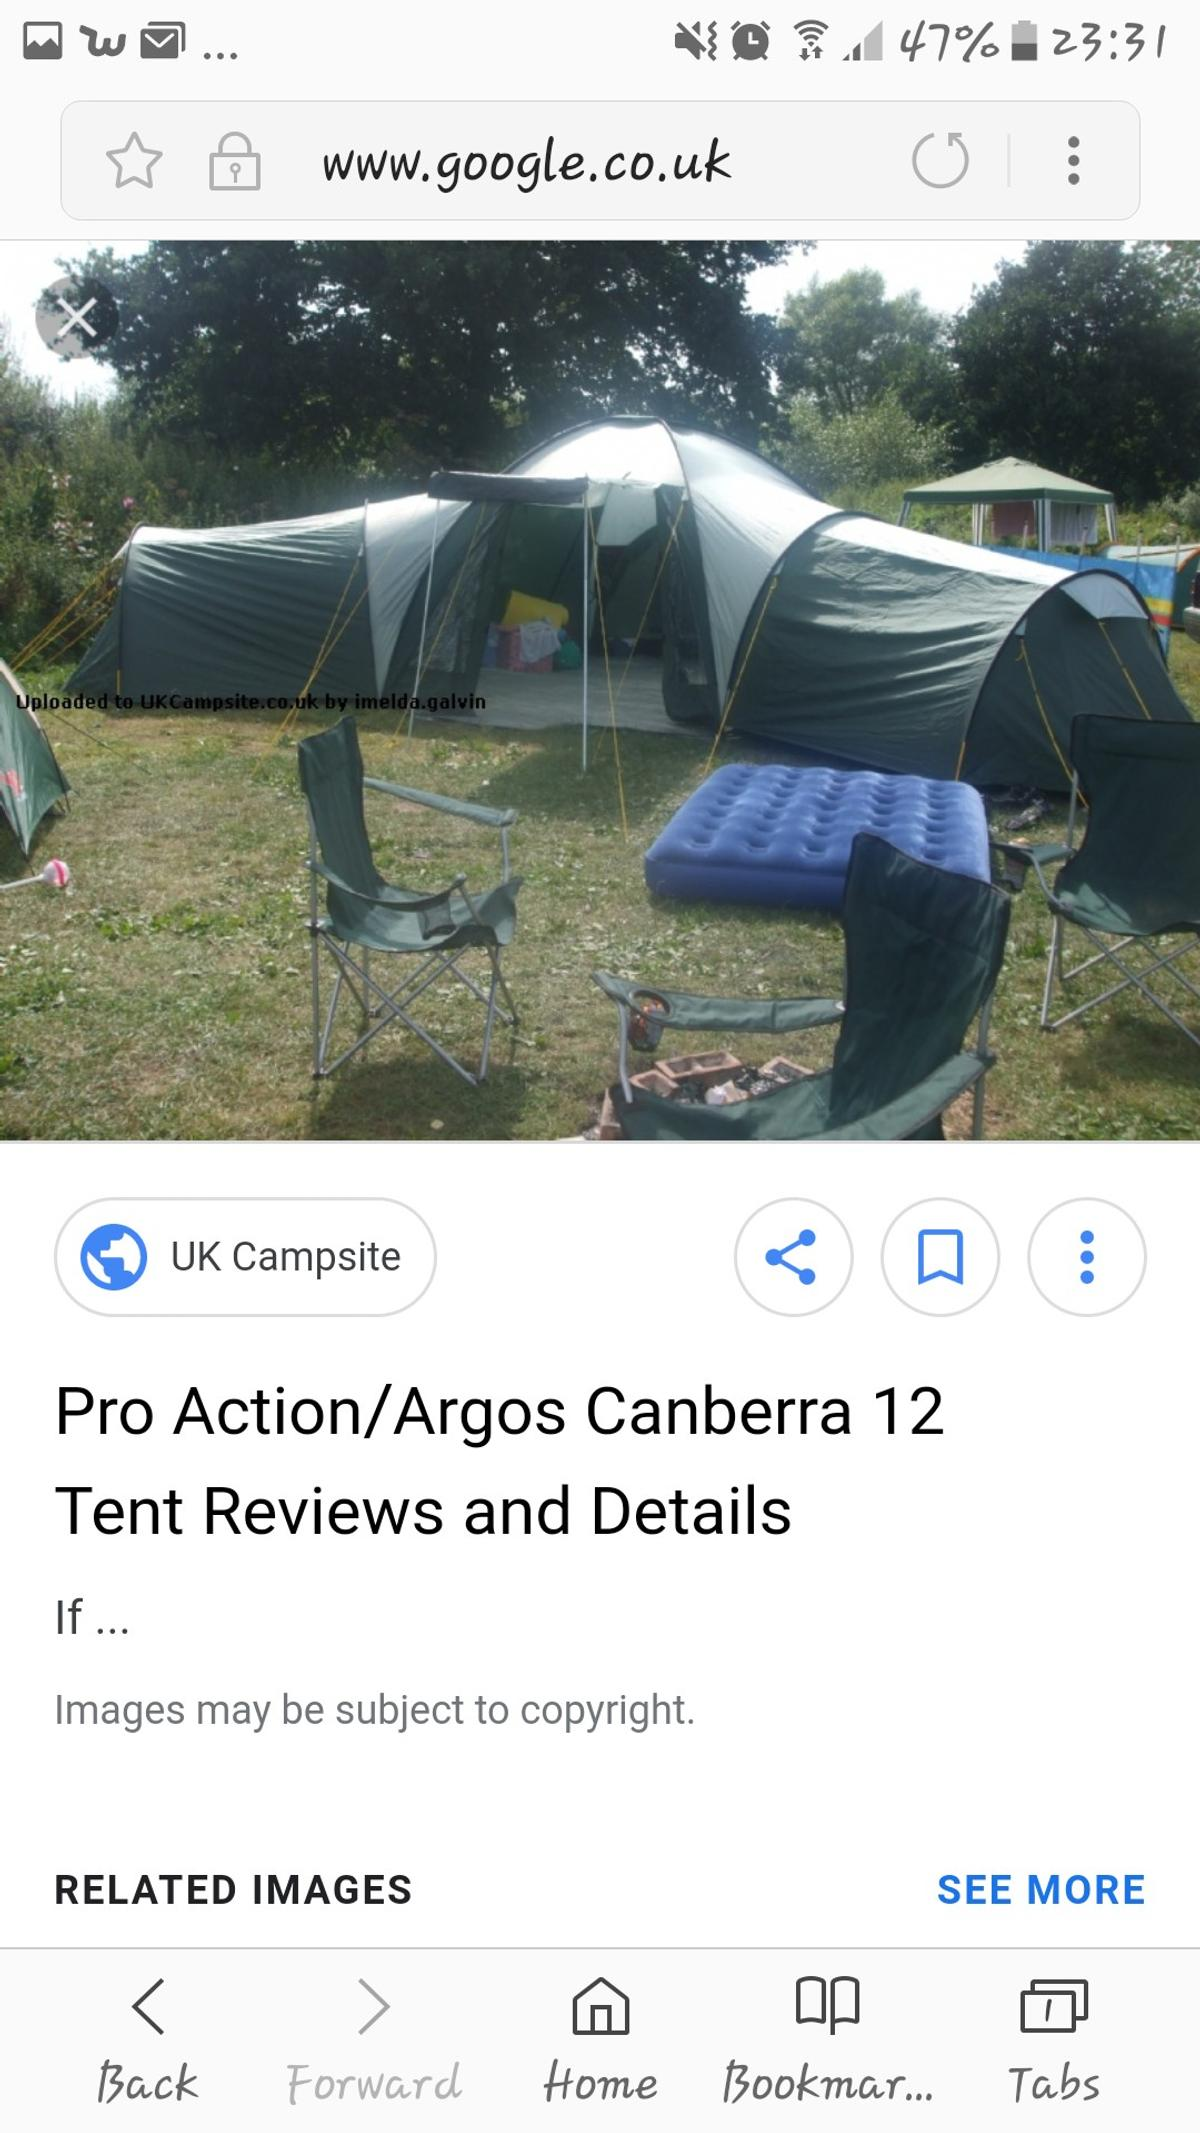 Pro action canberra 12 man tent in SP10 Test Valley for